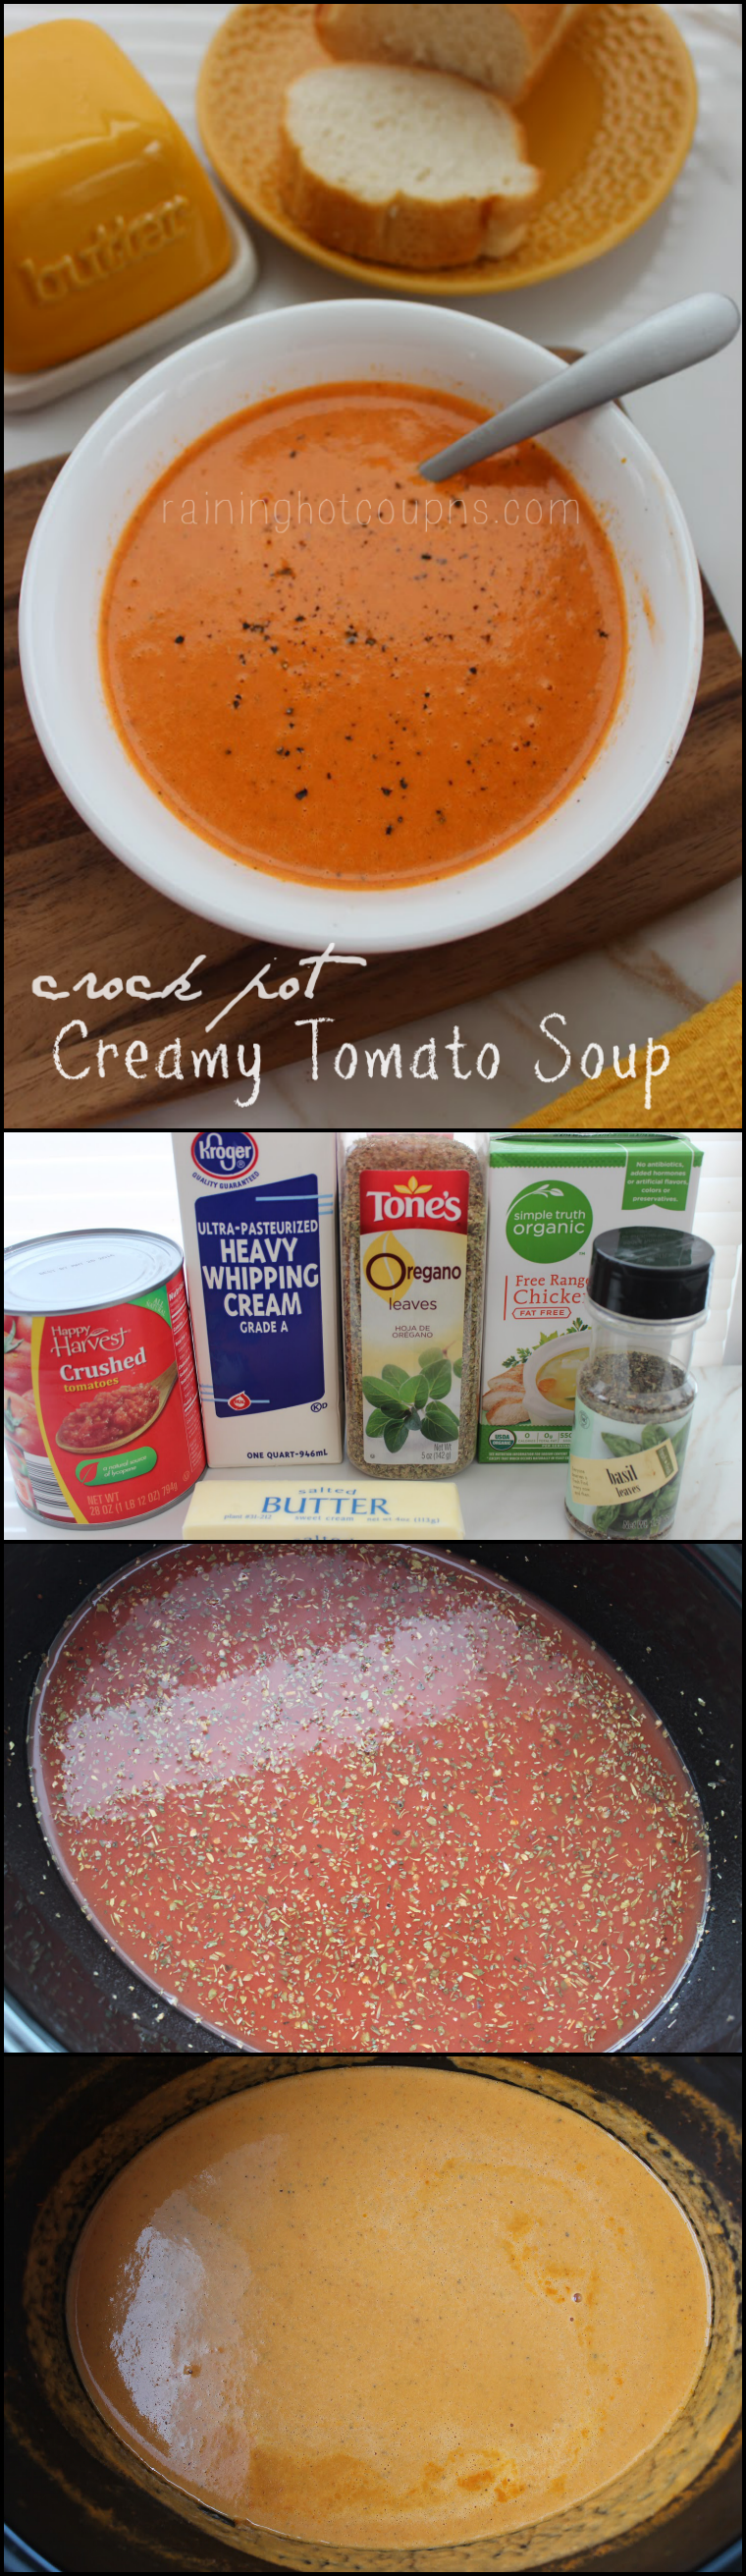 creamy tomato soup collage